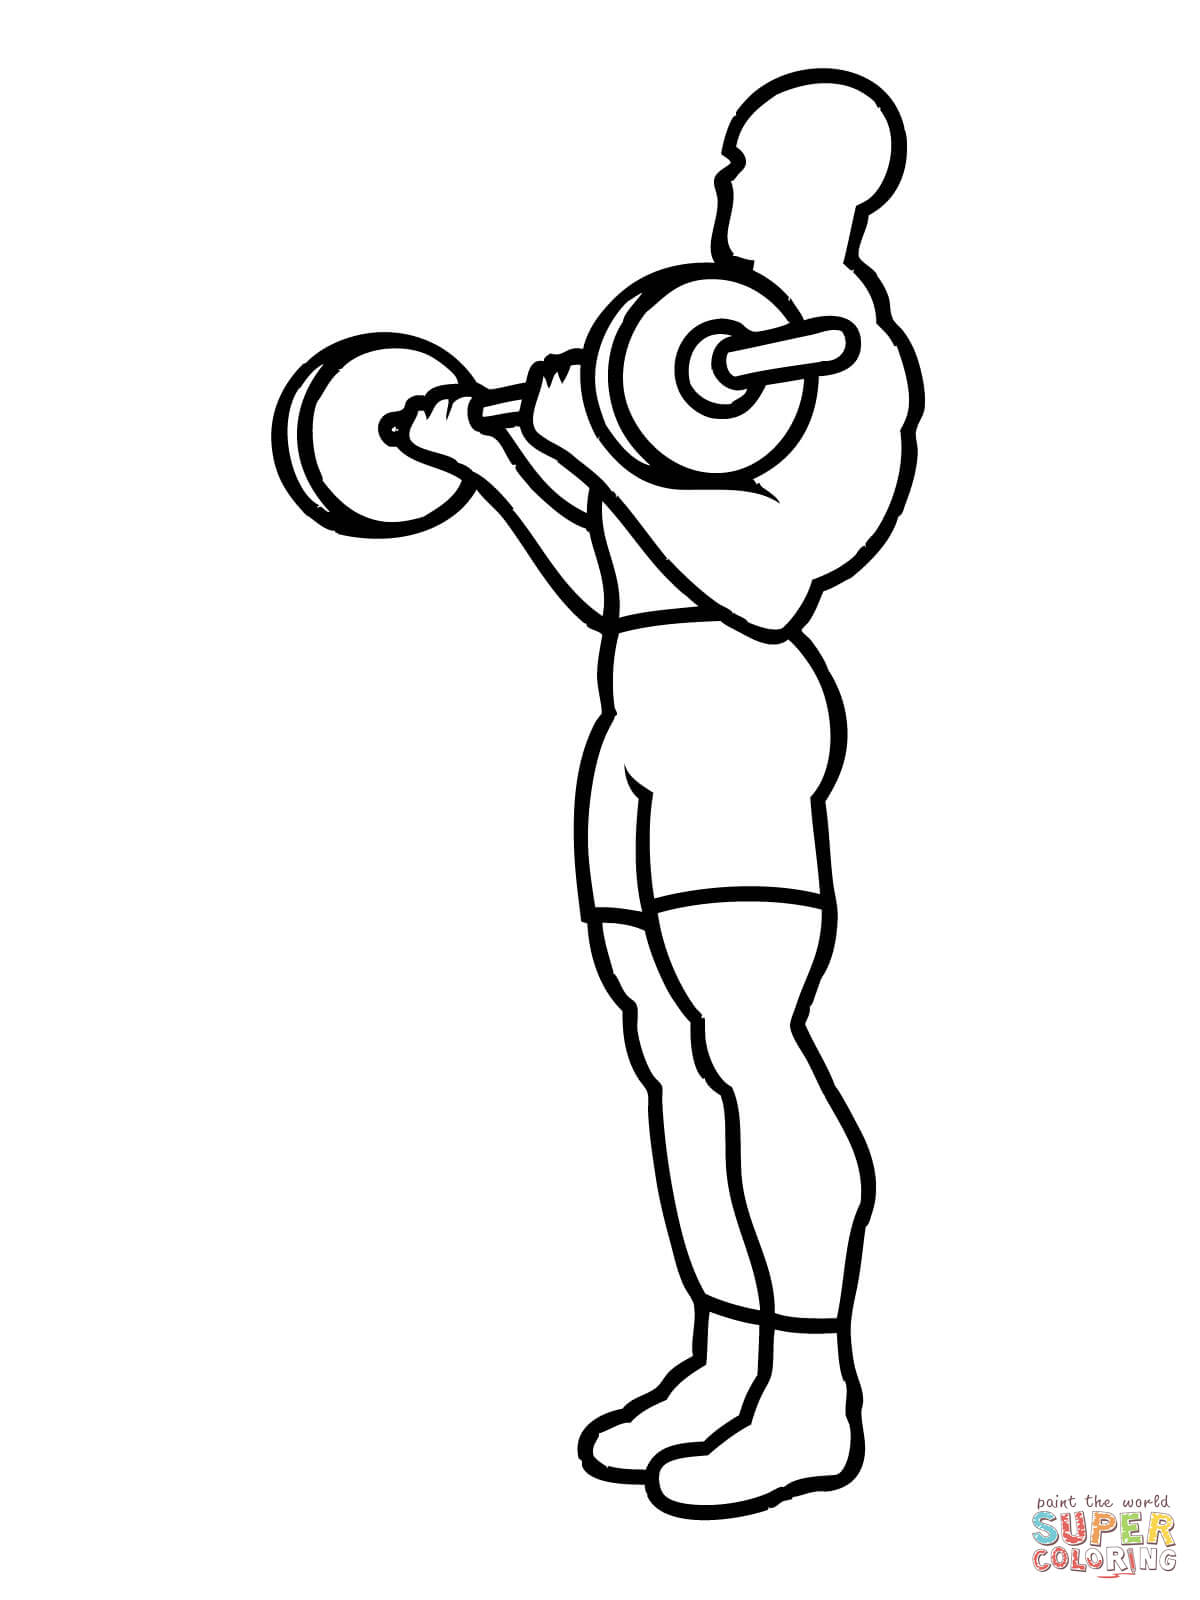 Weight Training Workout Coloring Page